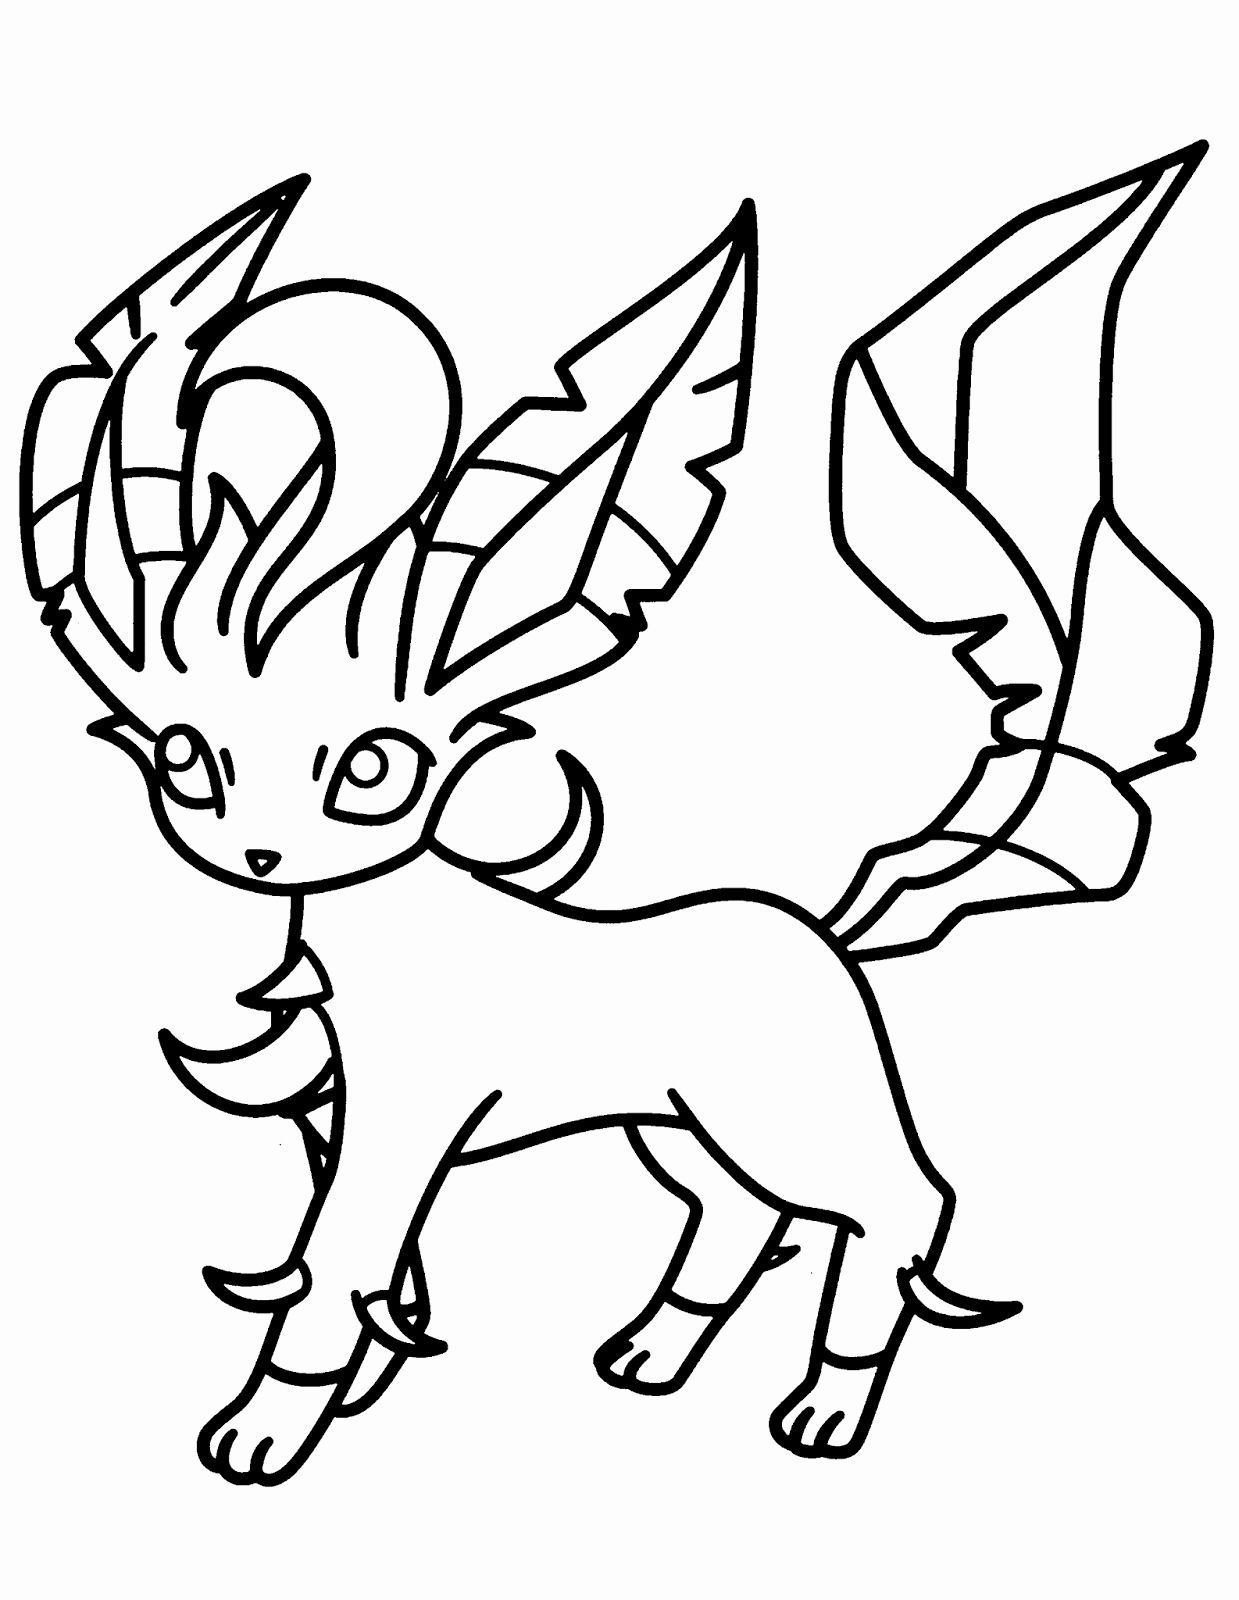 24 Pokemon Printable Coloring Pages In 2020 Pokemon Coloring